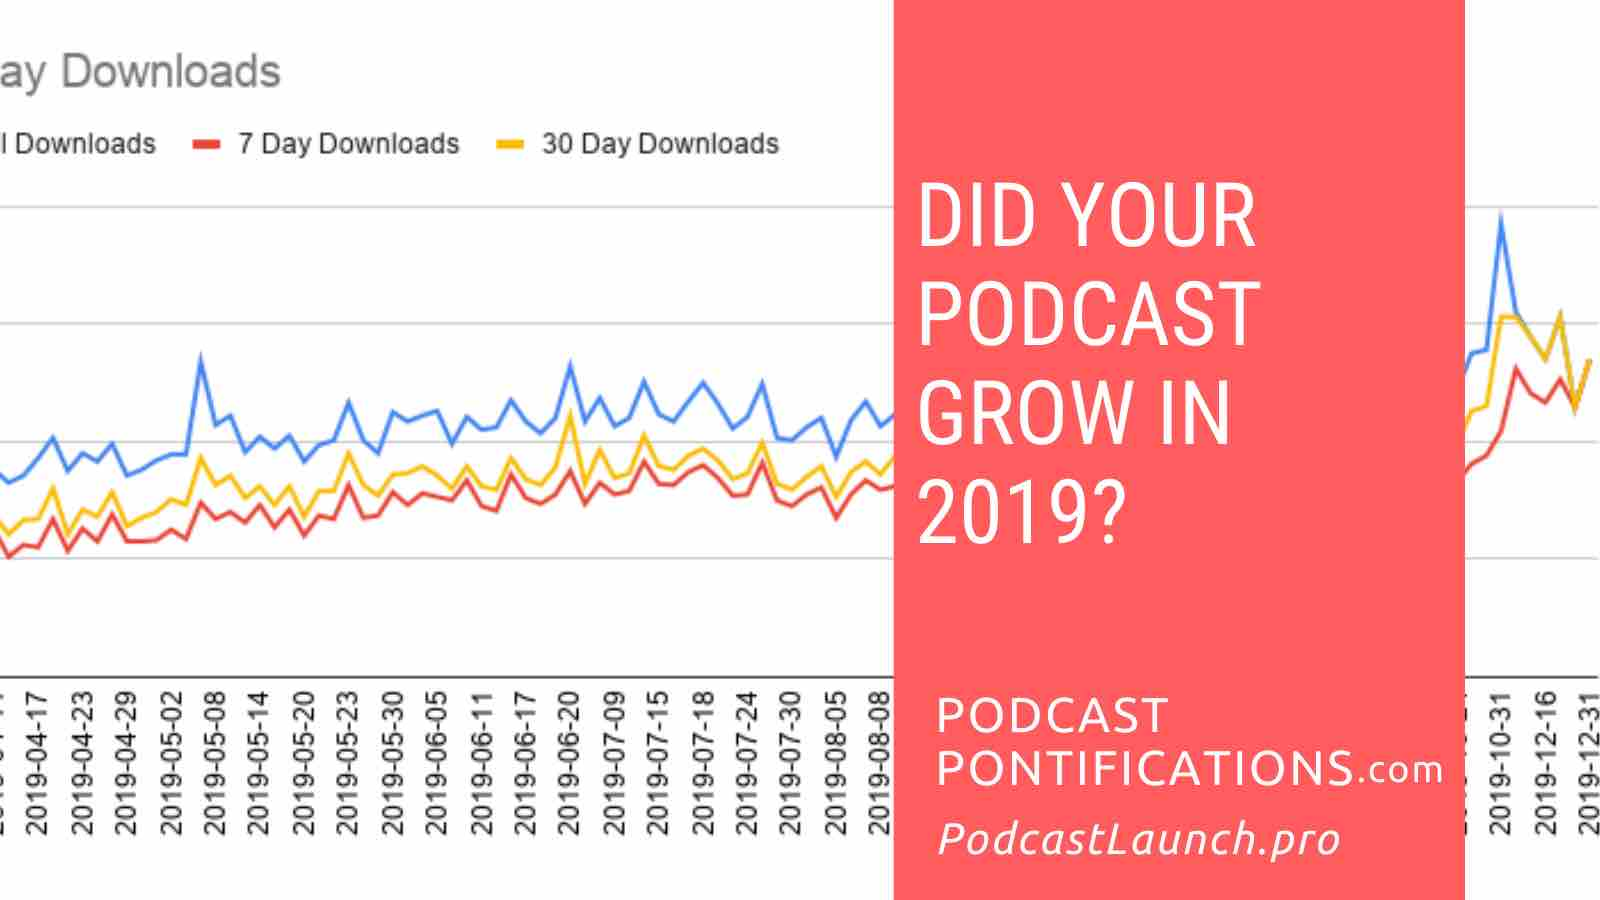 Did Your Podcast Grow In 2019?